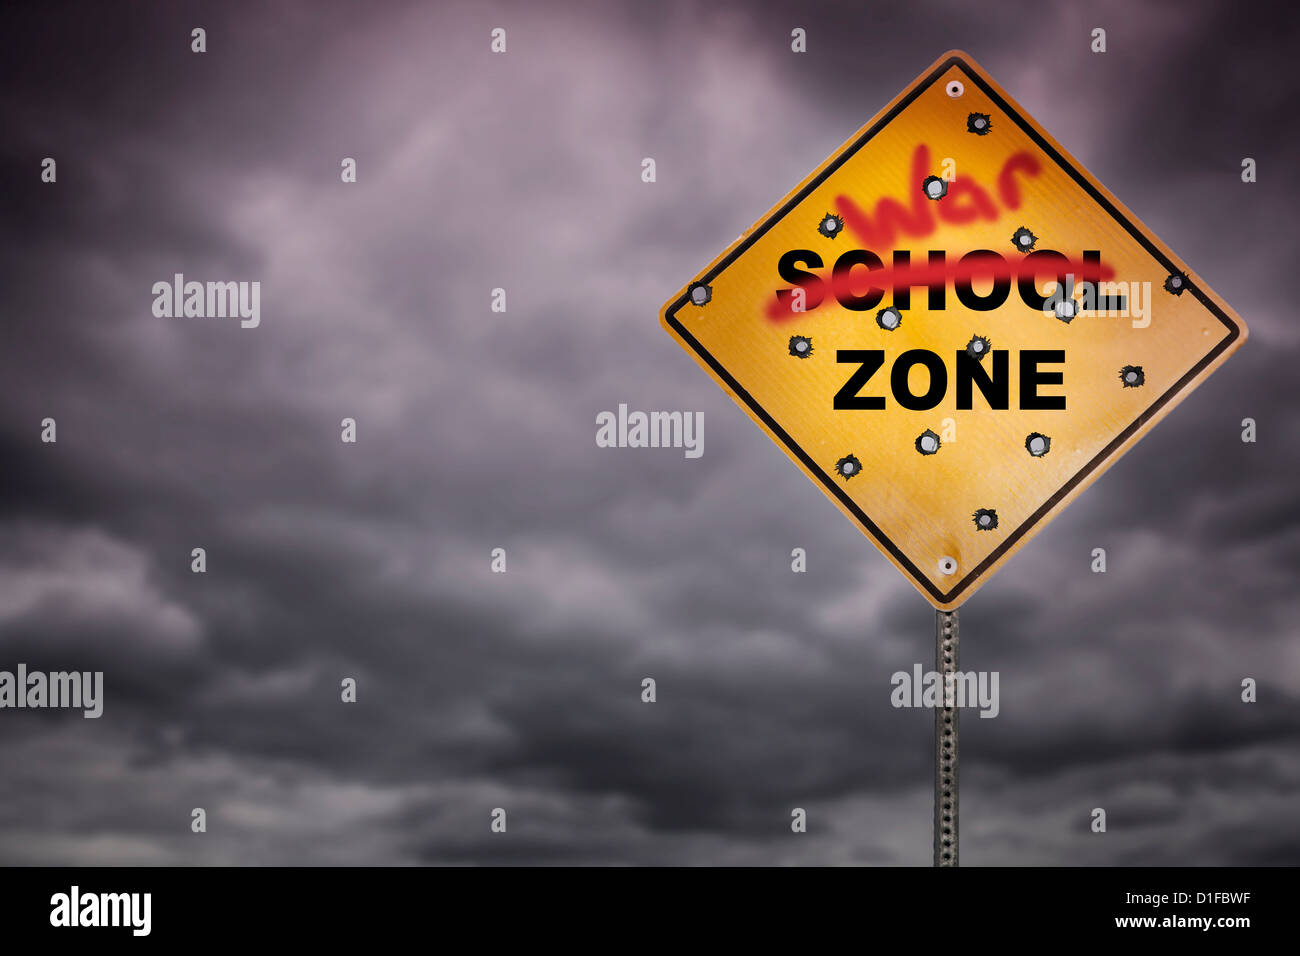 School zone sign with graffiti and bullet holes - Stock Image